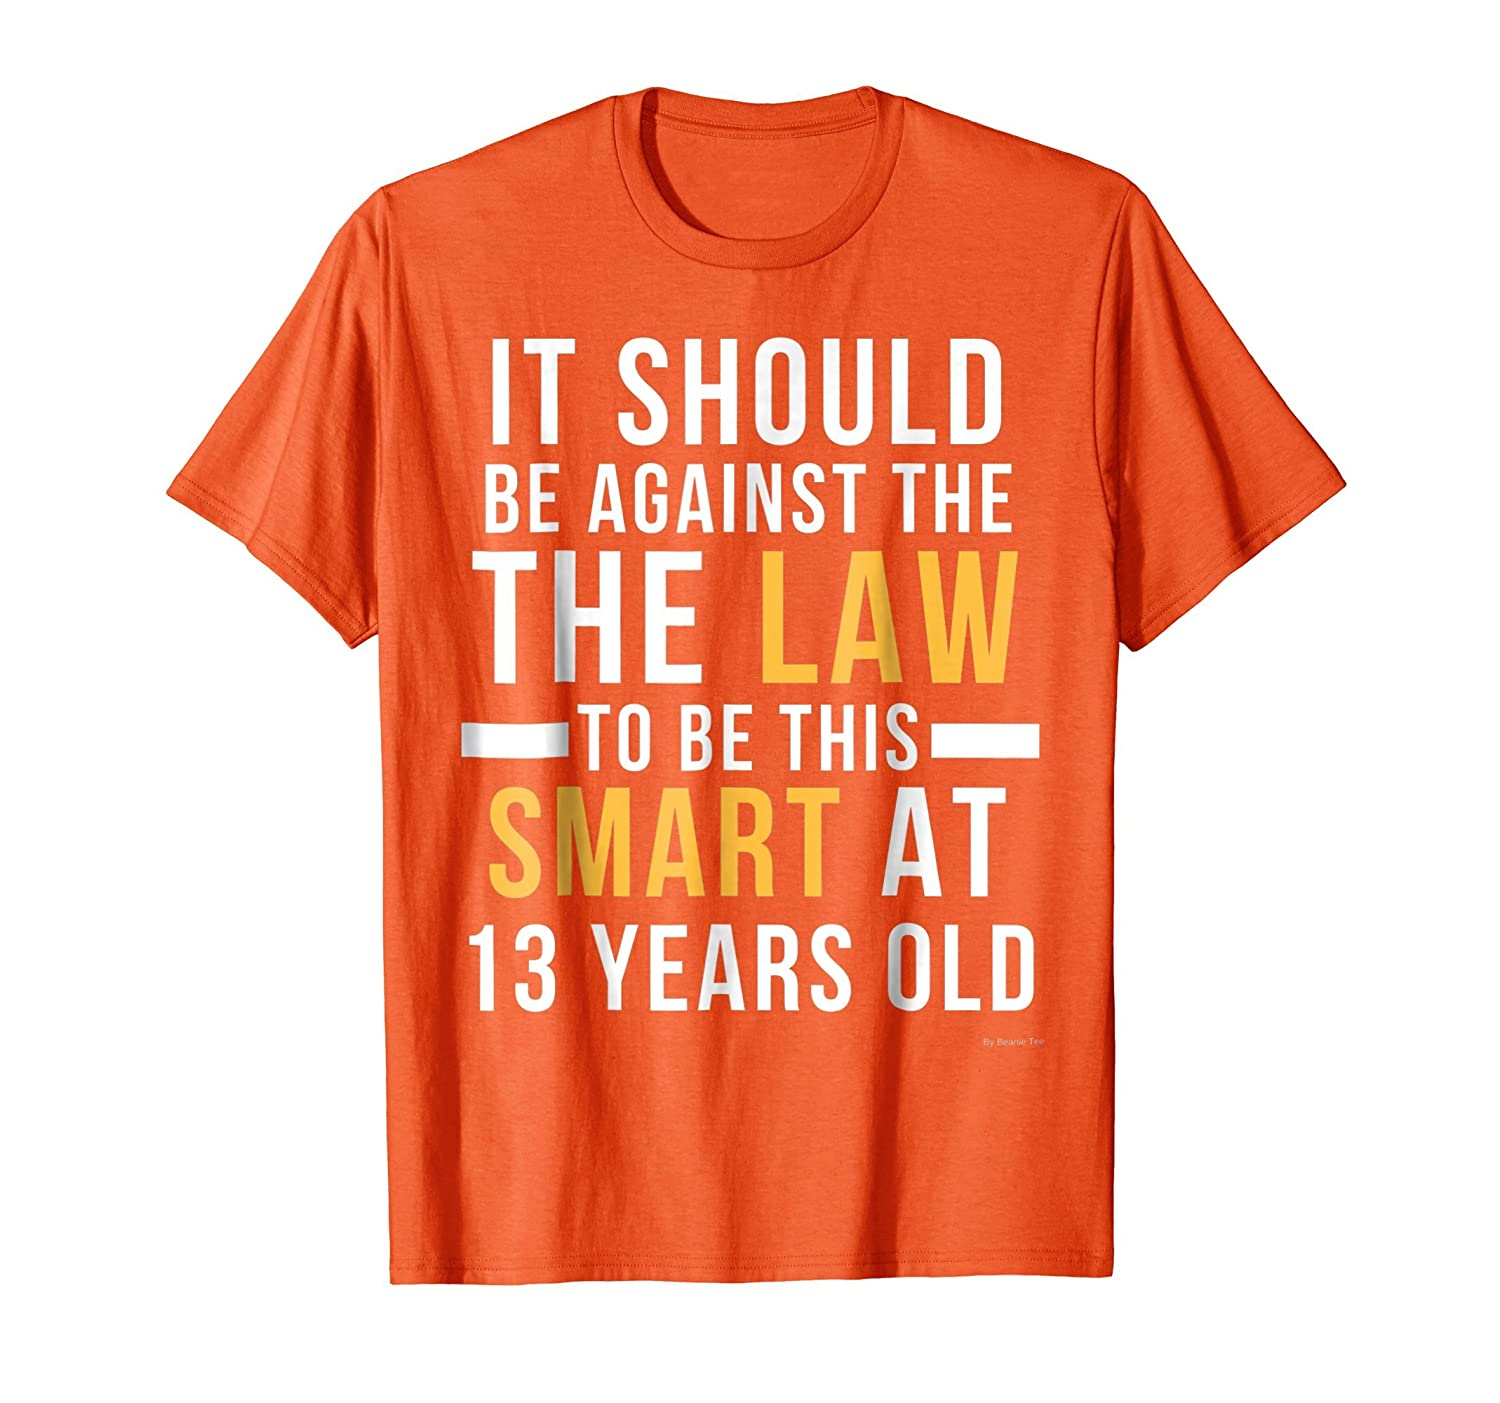 959c19c8 Nike Shirts With Sayings On Them - DREAMWORKS